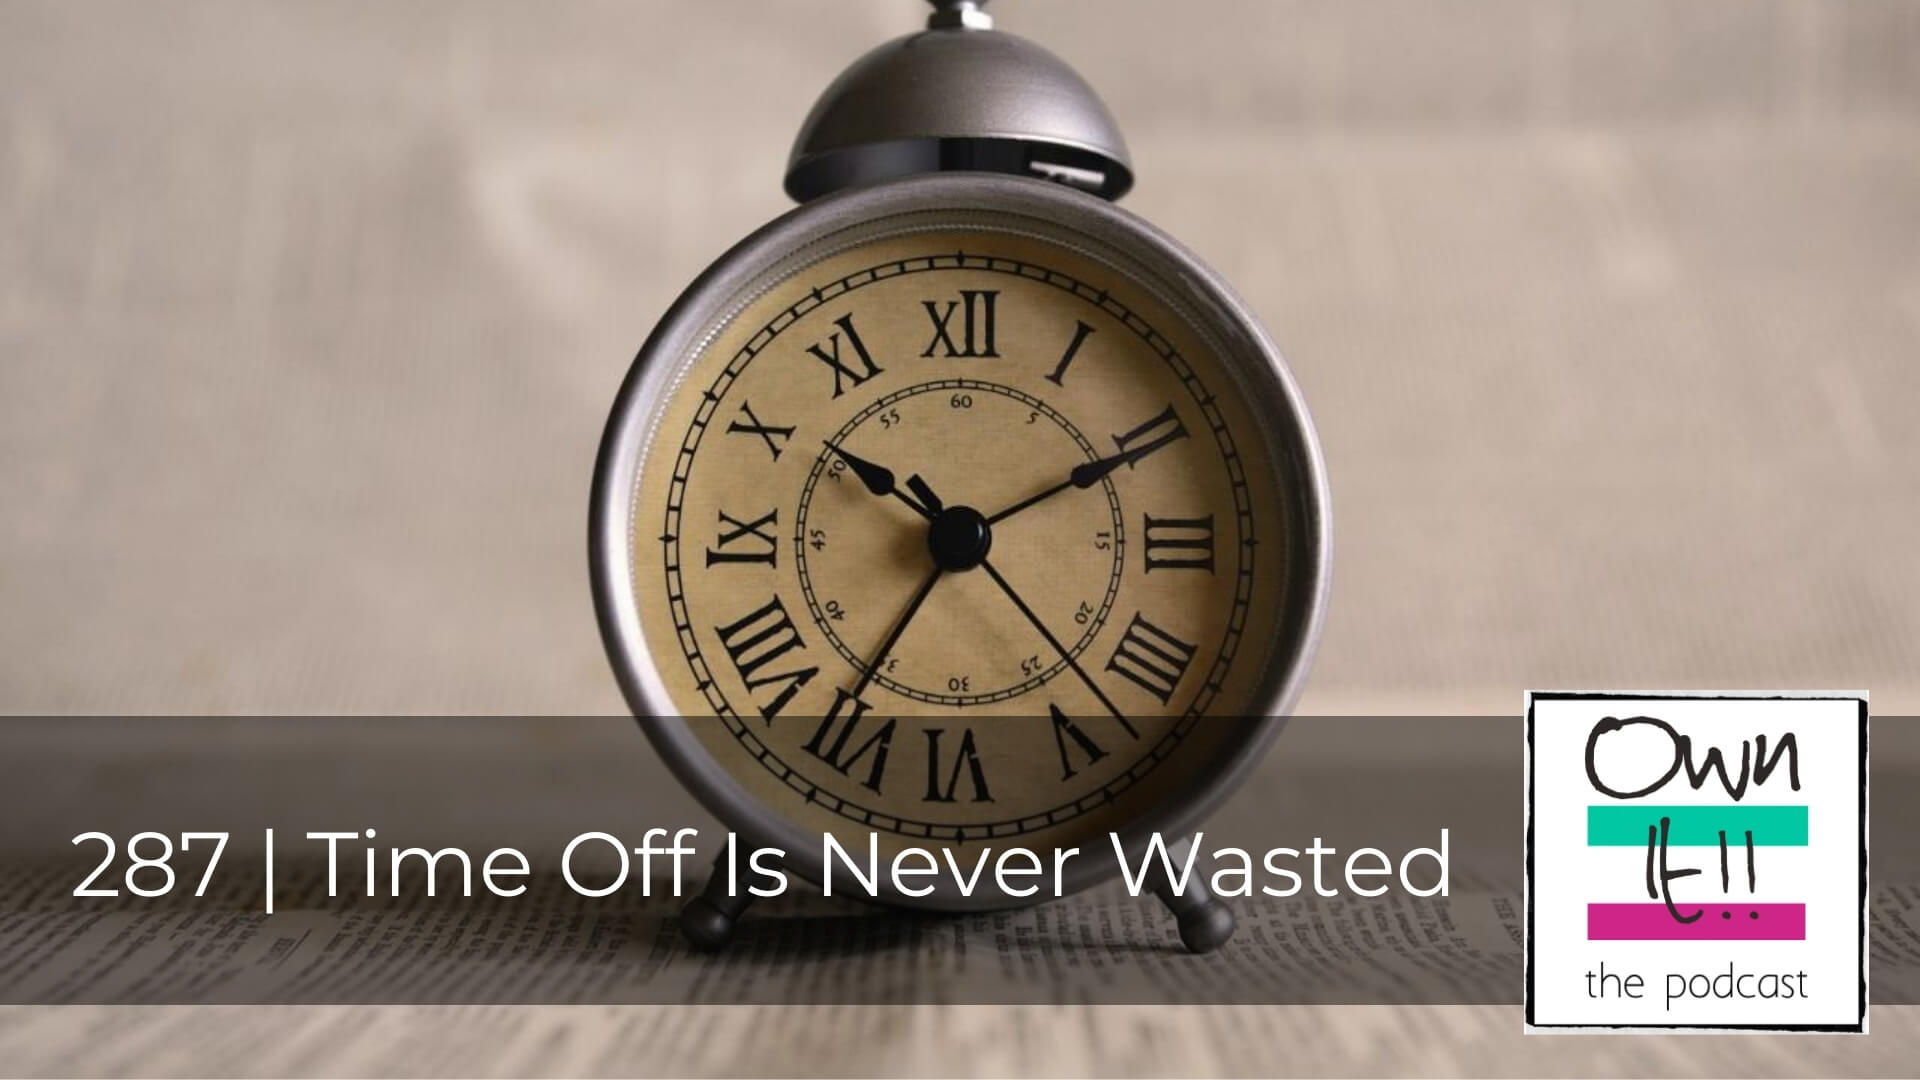 Own It! 287 | Time Off Is Never Wasted